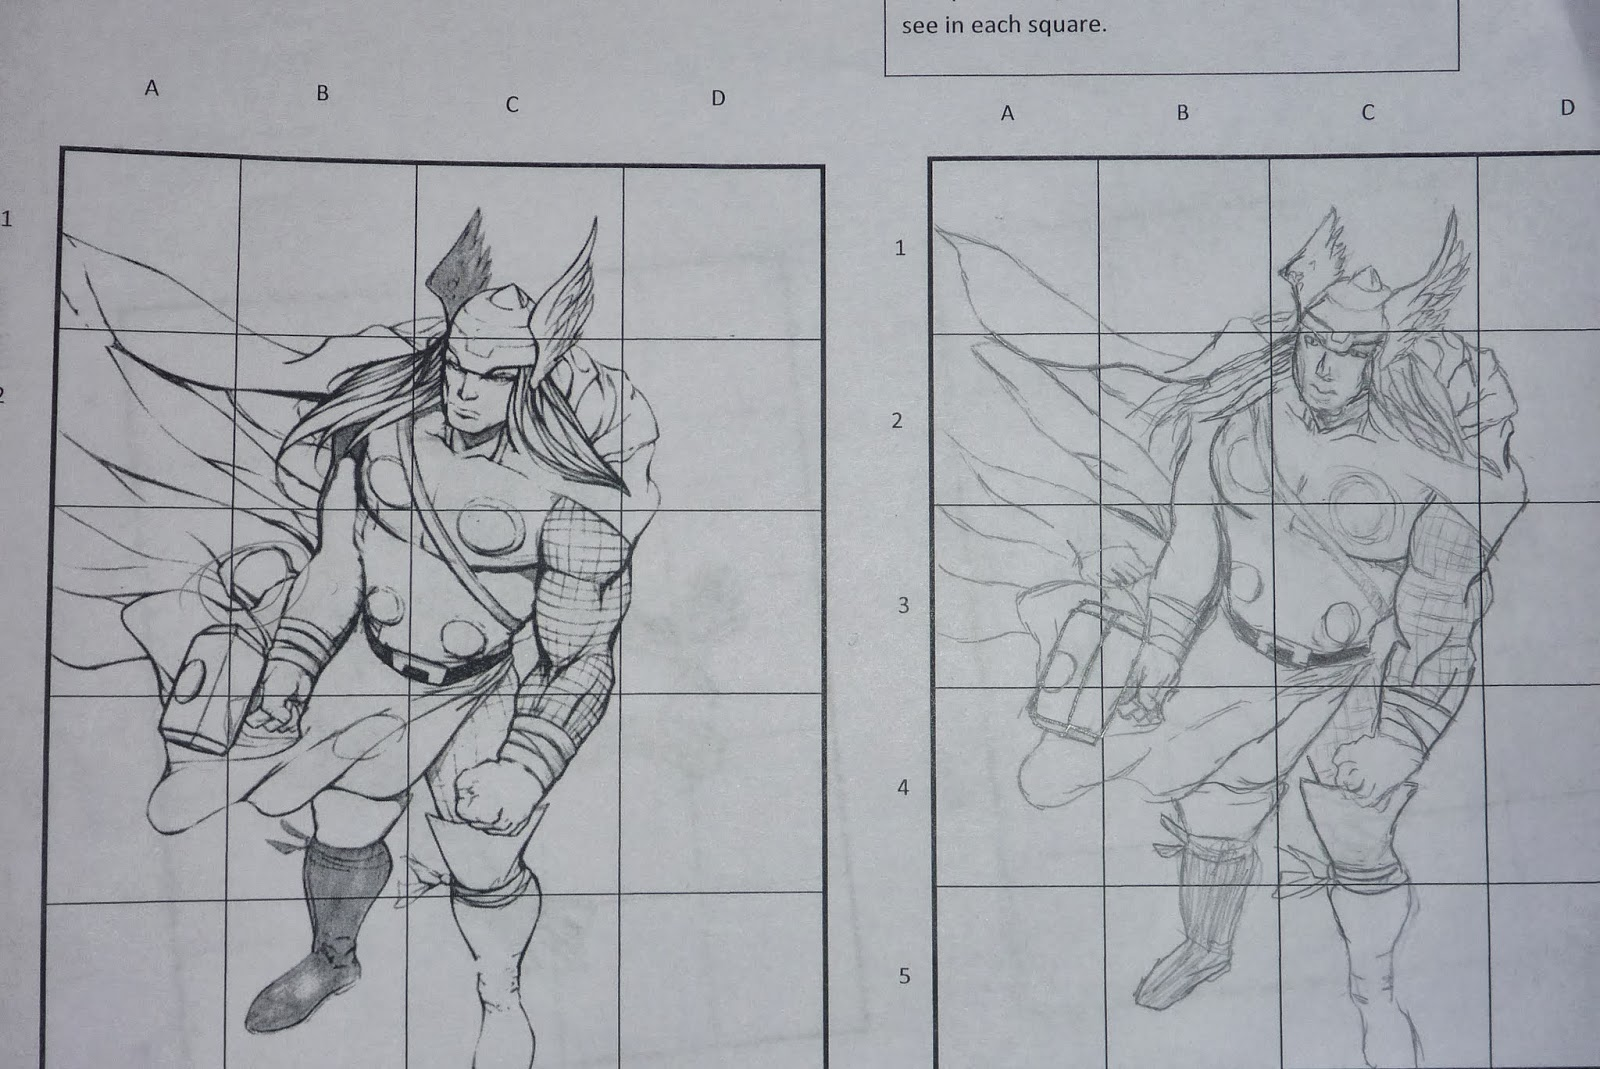 Grid Drawing Worksheets For High School Students : Splatters and smudges superheros